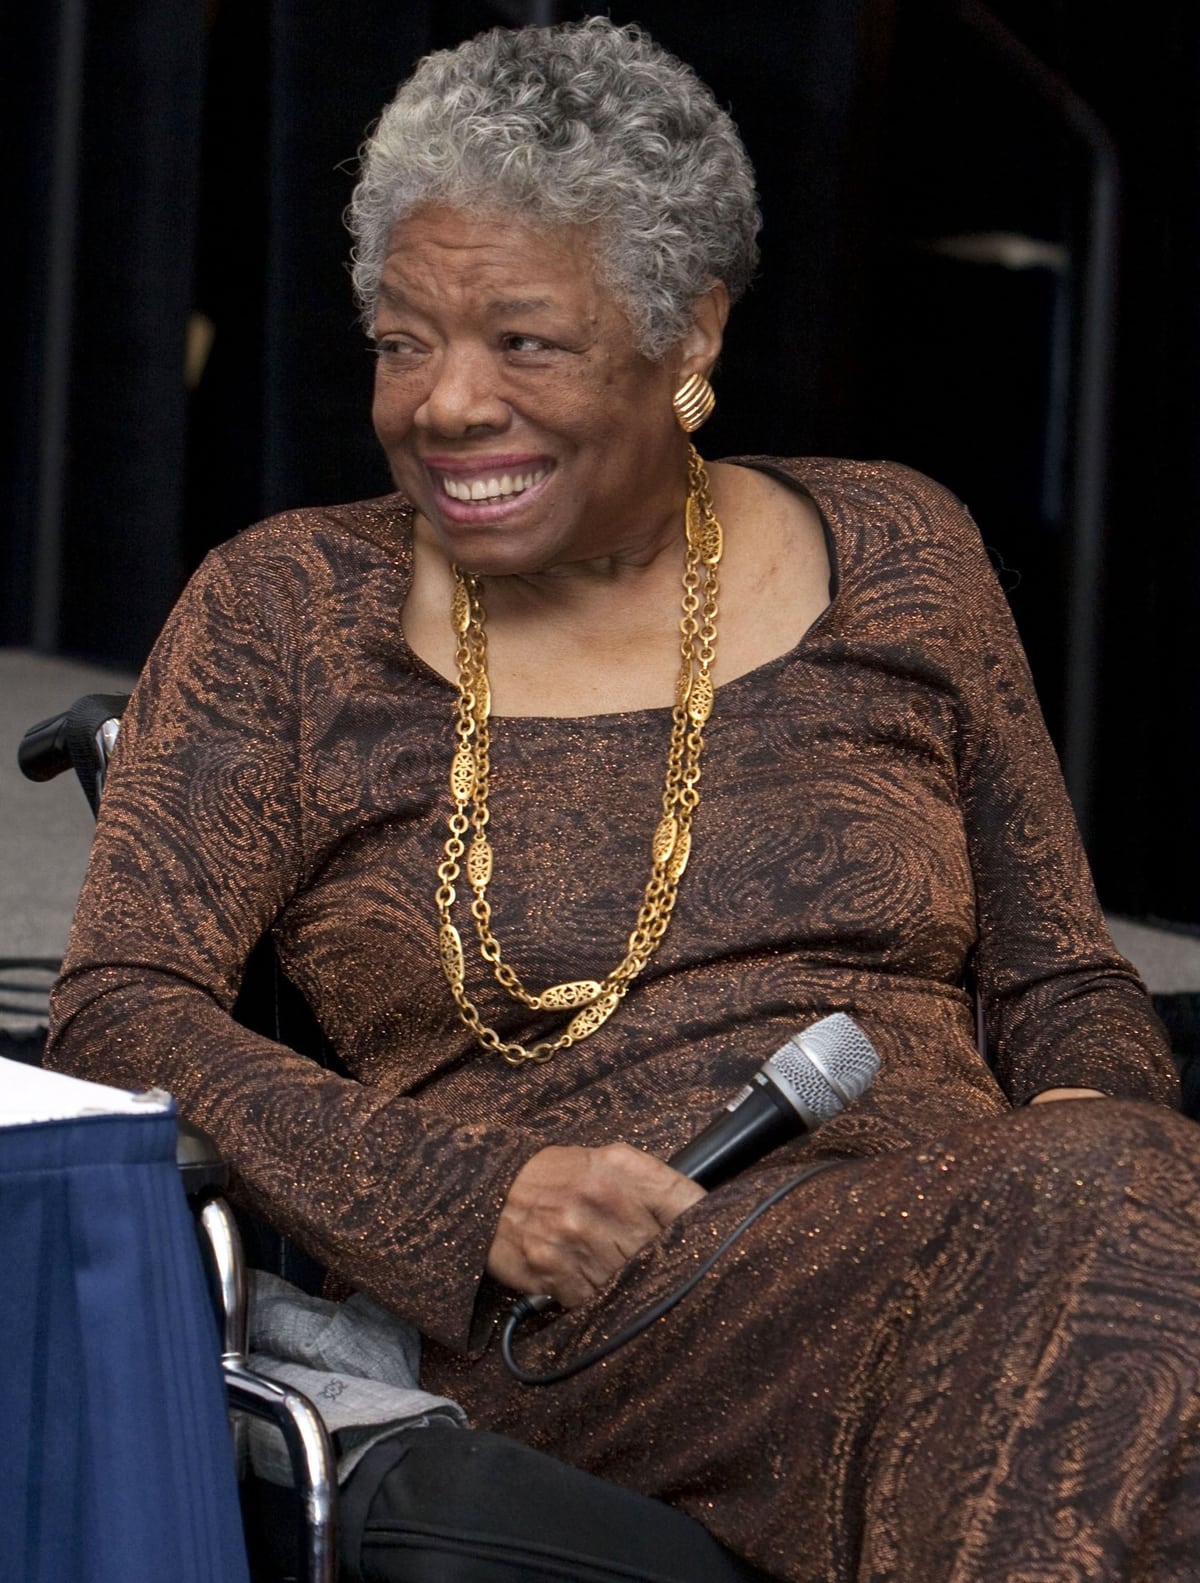 The celebrated African-American poet Maya Angelou did not write the poem asserting that Timberland is owned by the KKK